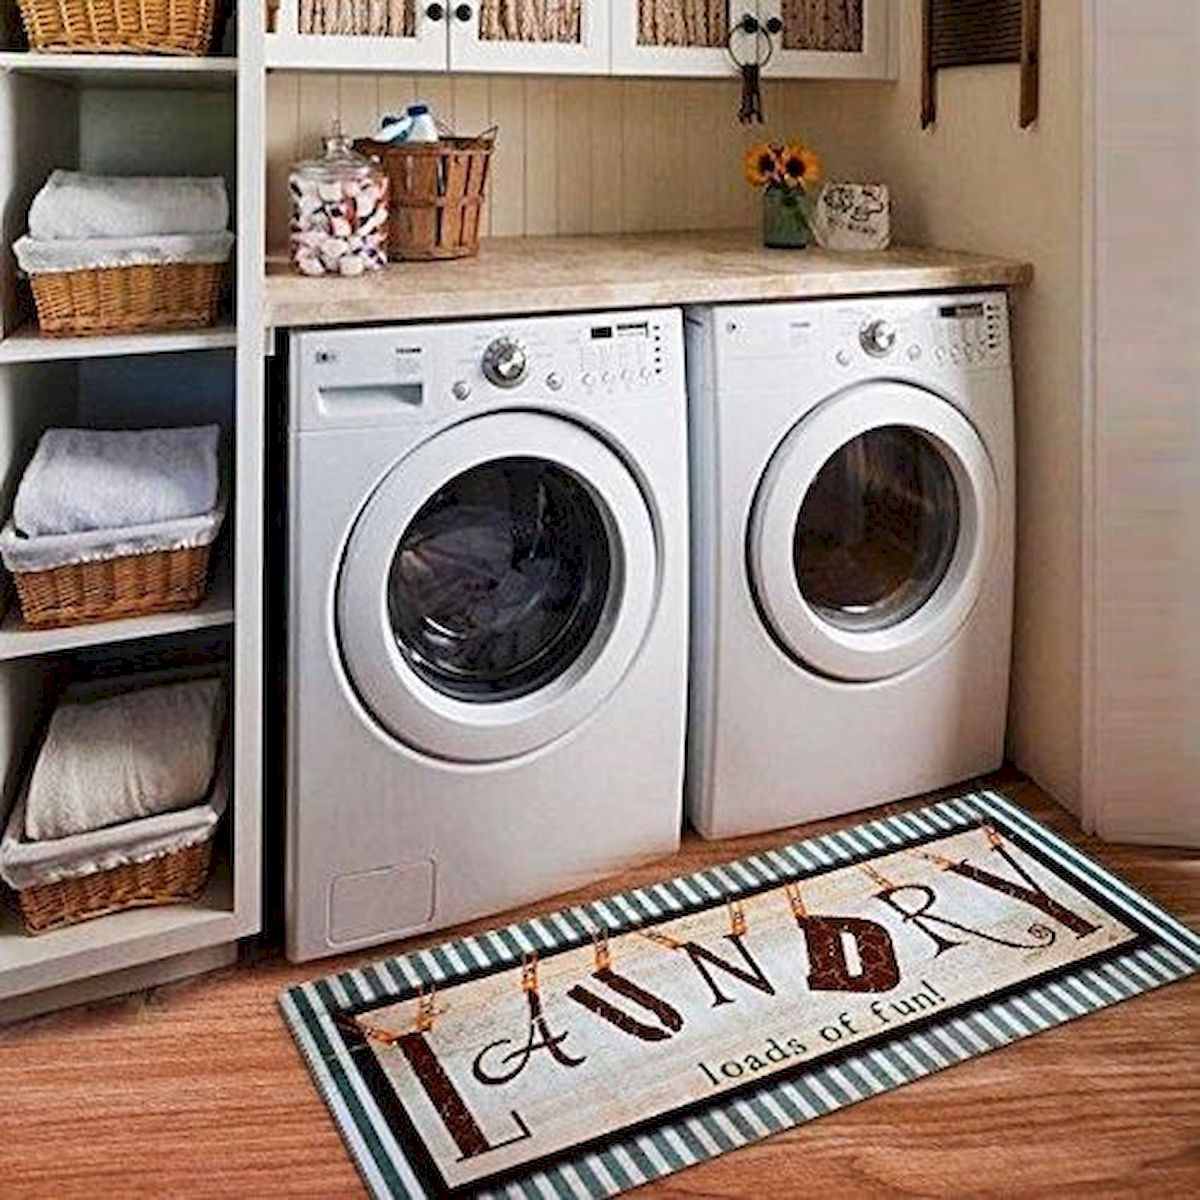 57 Fantastic Laundry Room Design Ideas and Decorations (39)